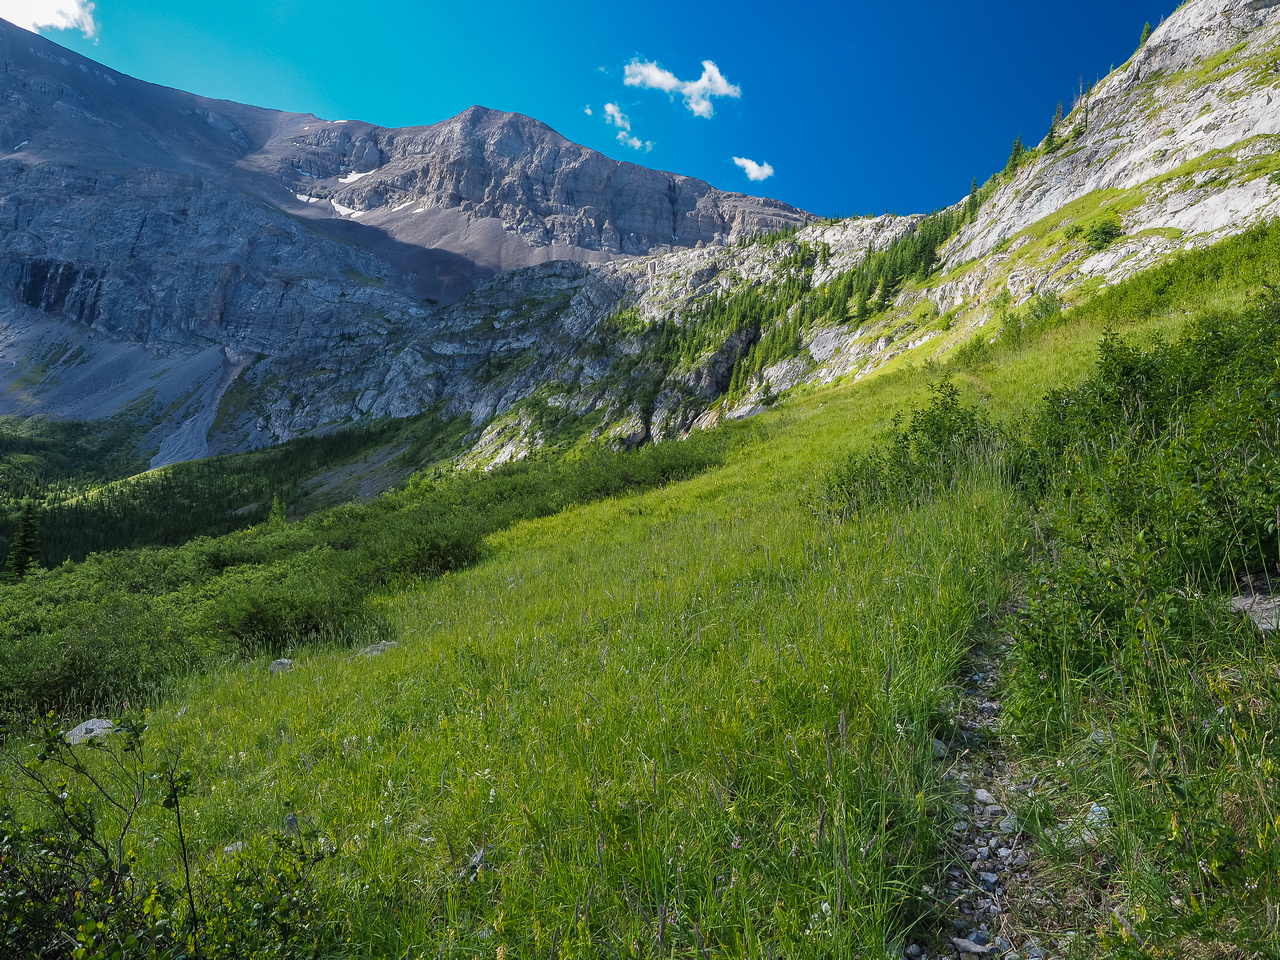 Looking back along the obvious trail to the headwall.